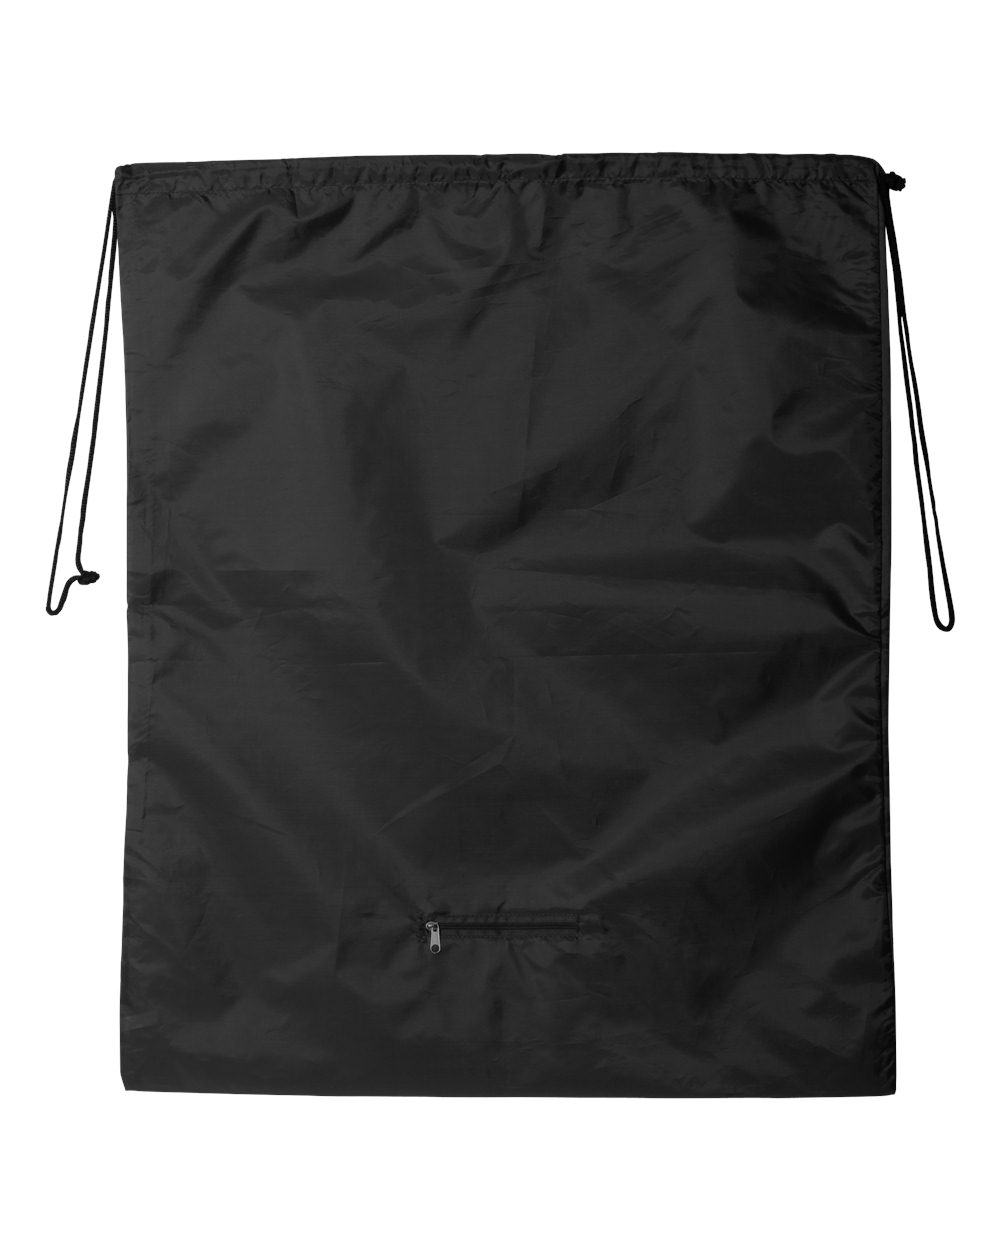 Valubag Nylon Laundry Bag - VB0091